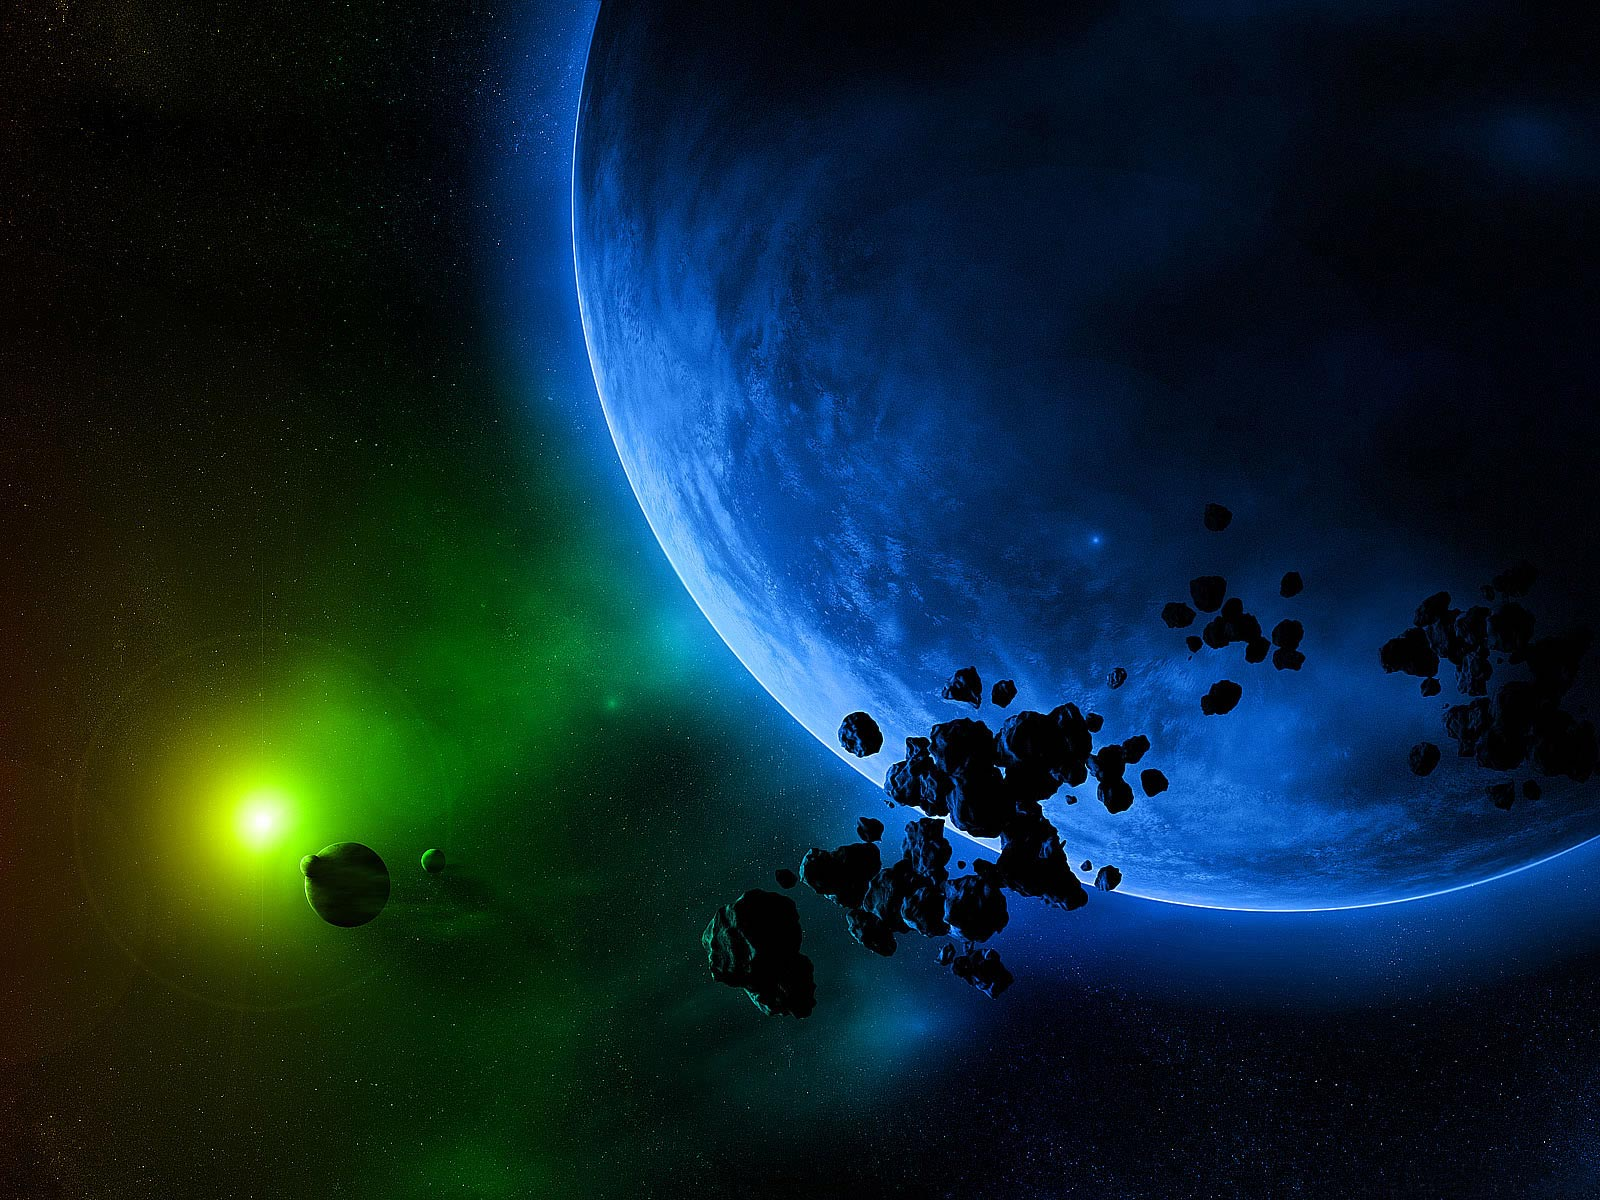 Meteorites Carrying Phosphorus May Have Brought Life to Earth